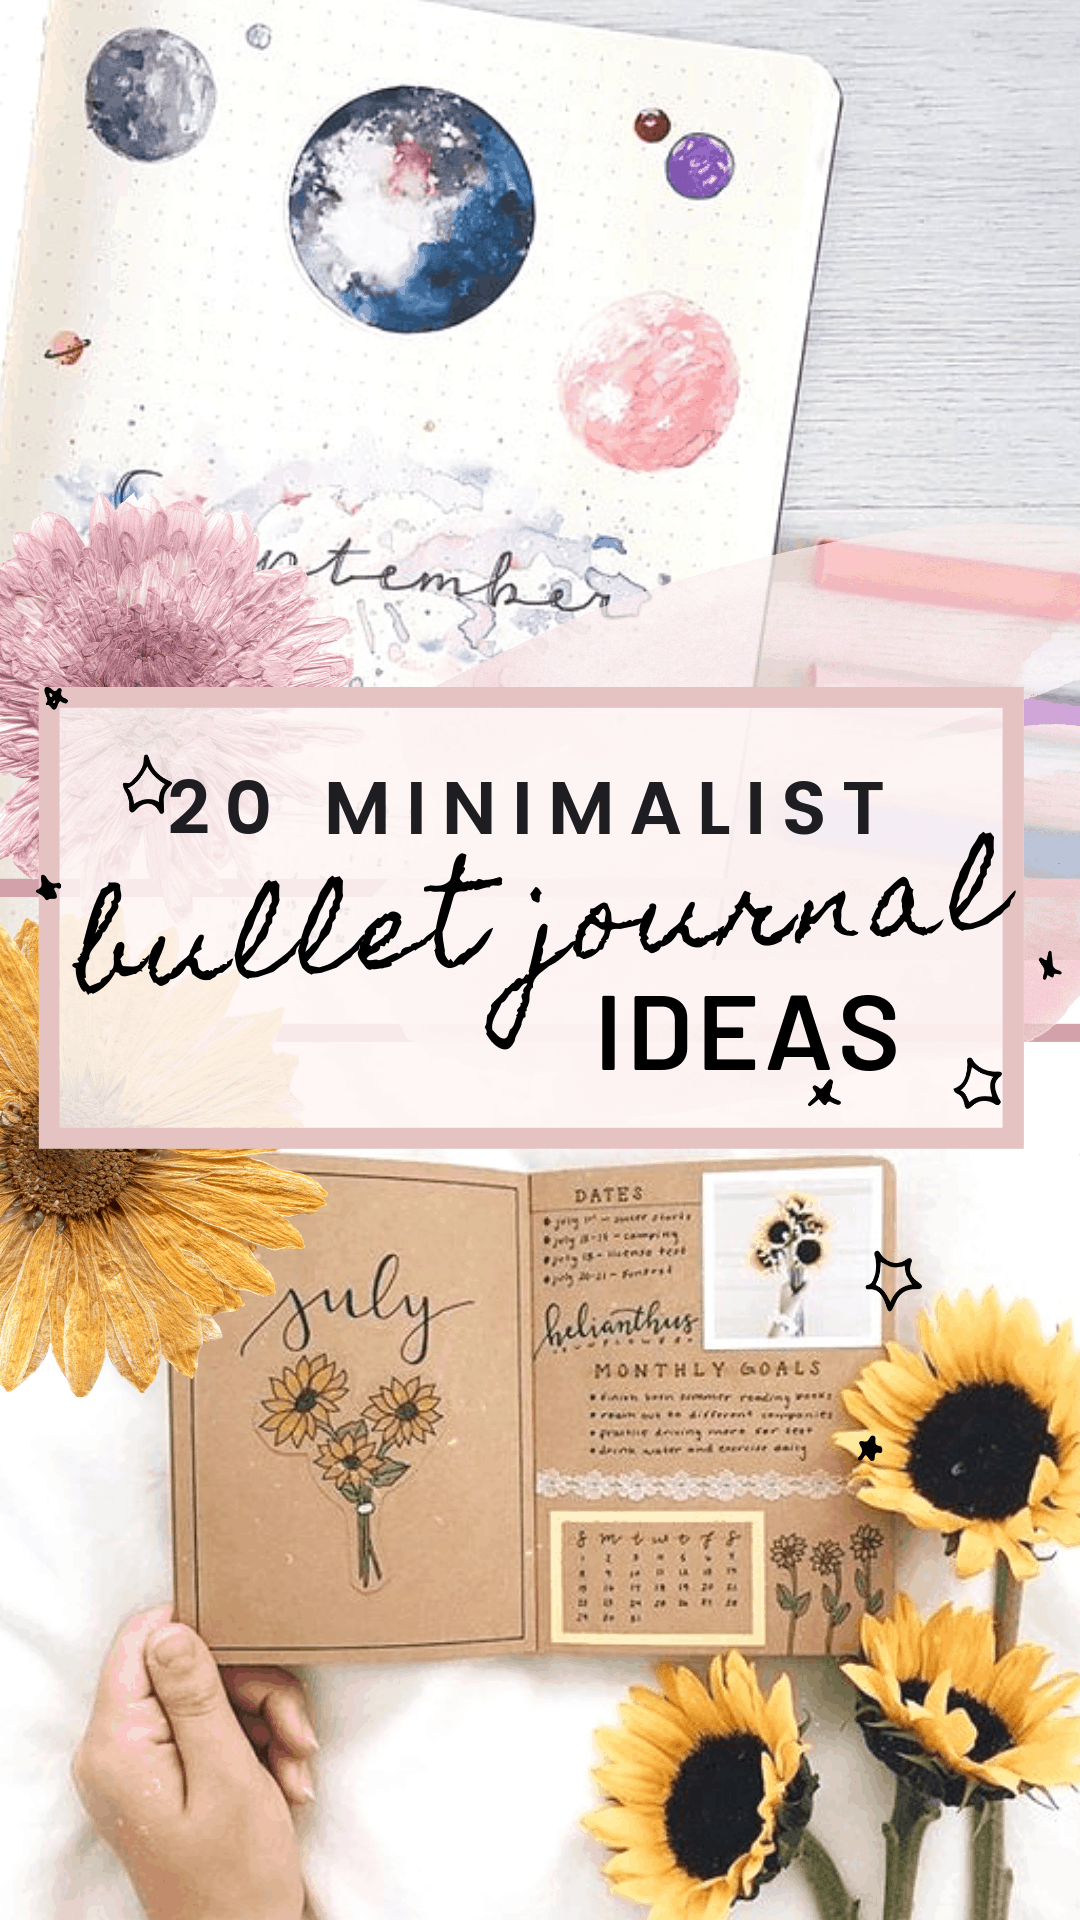 20 Minimalist Bullet Journal Ideas